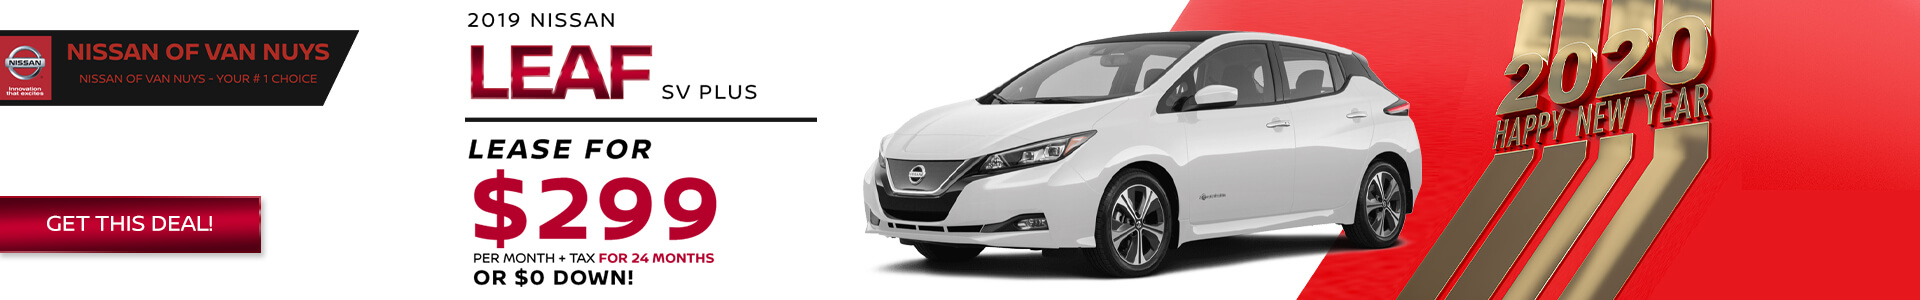 Nissan LEAF - Lease for $299